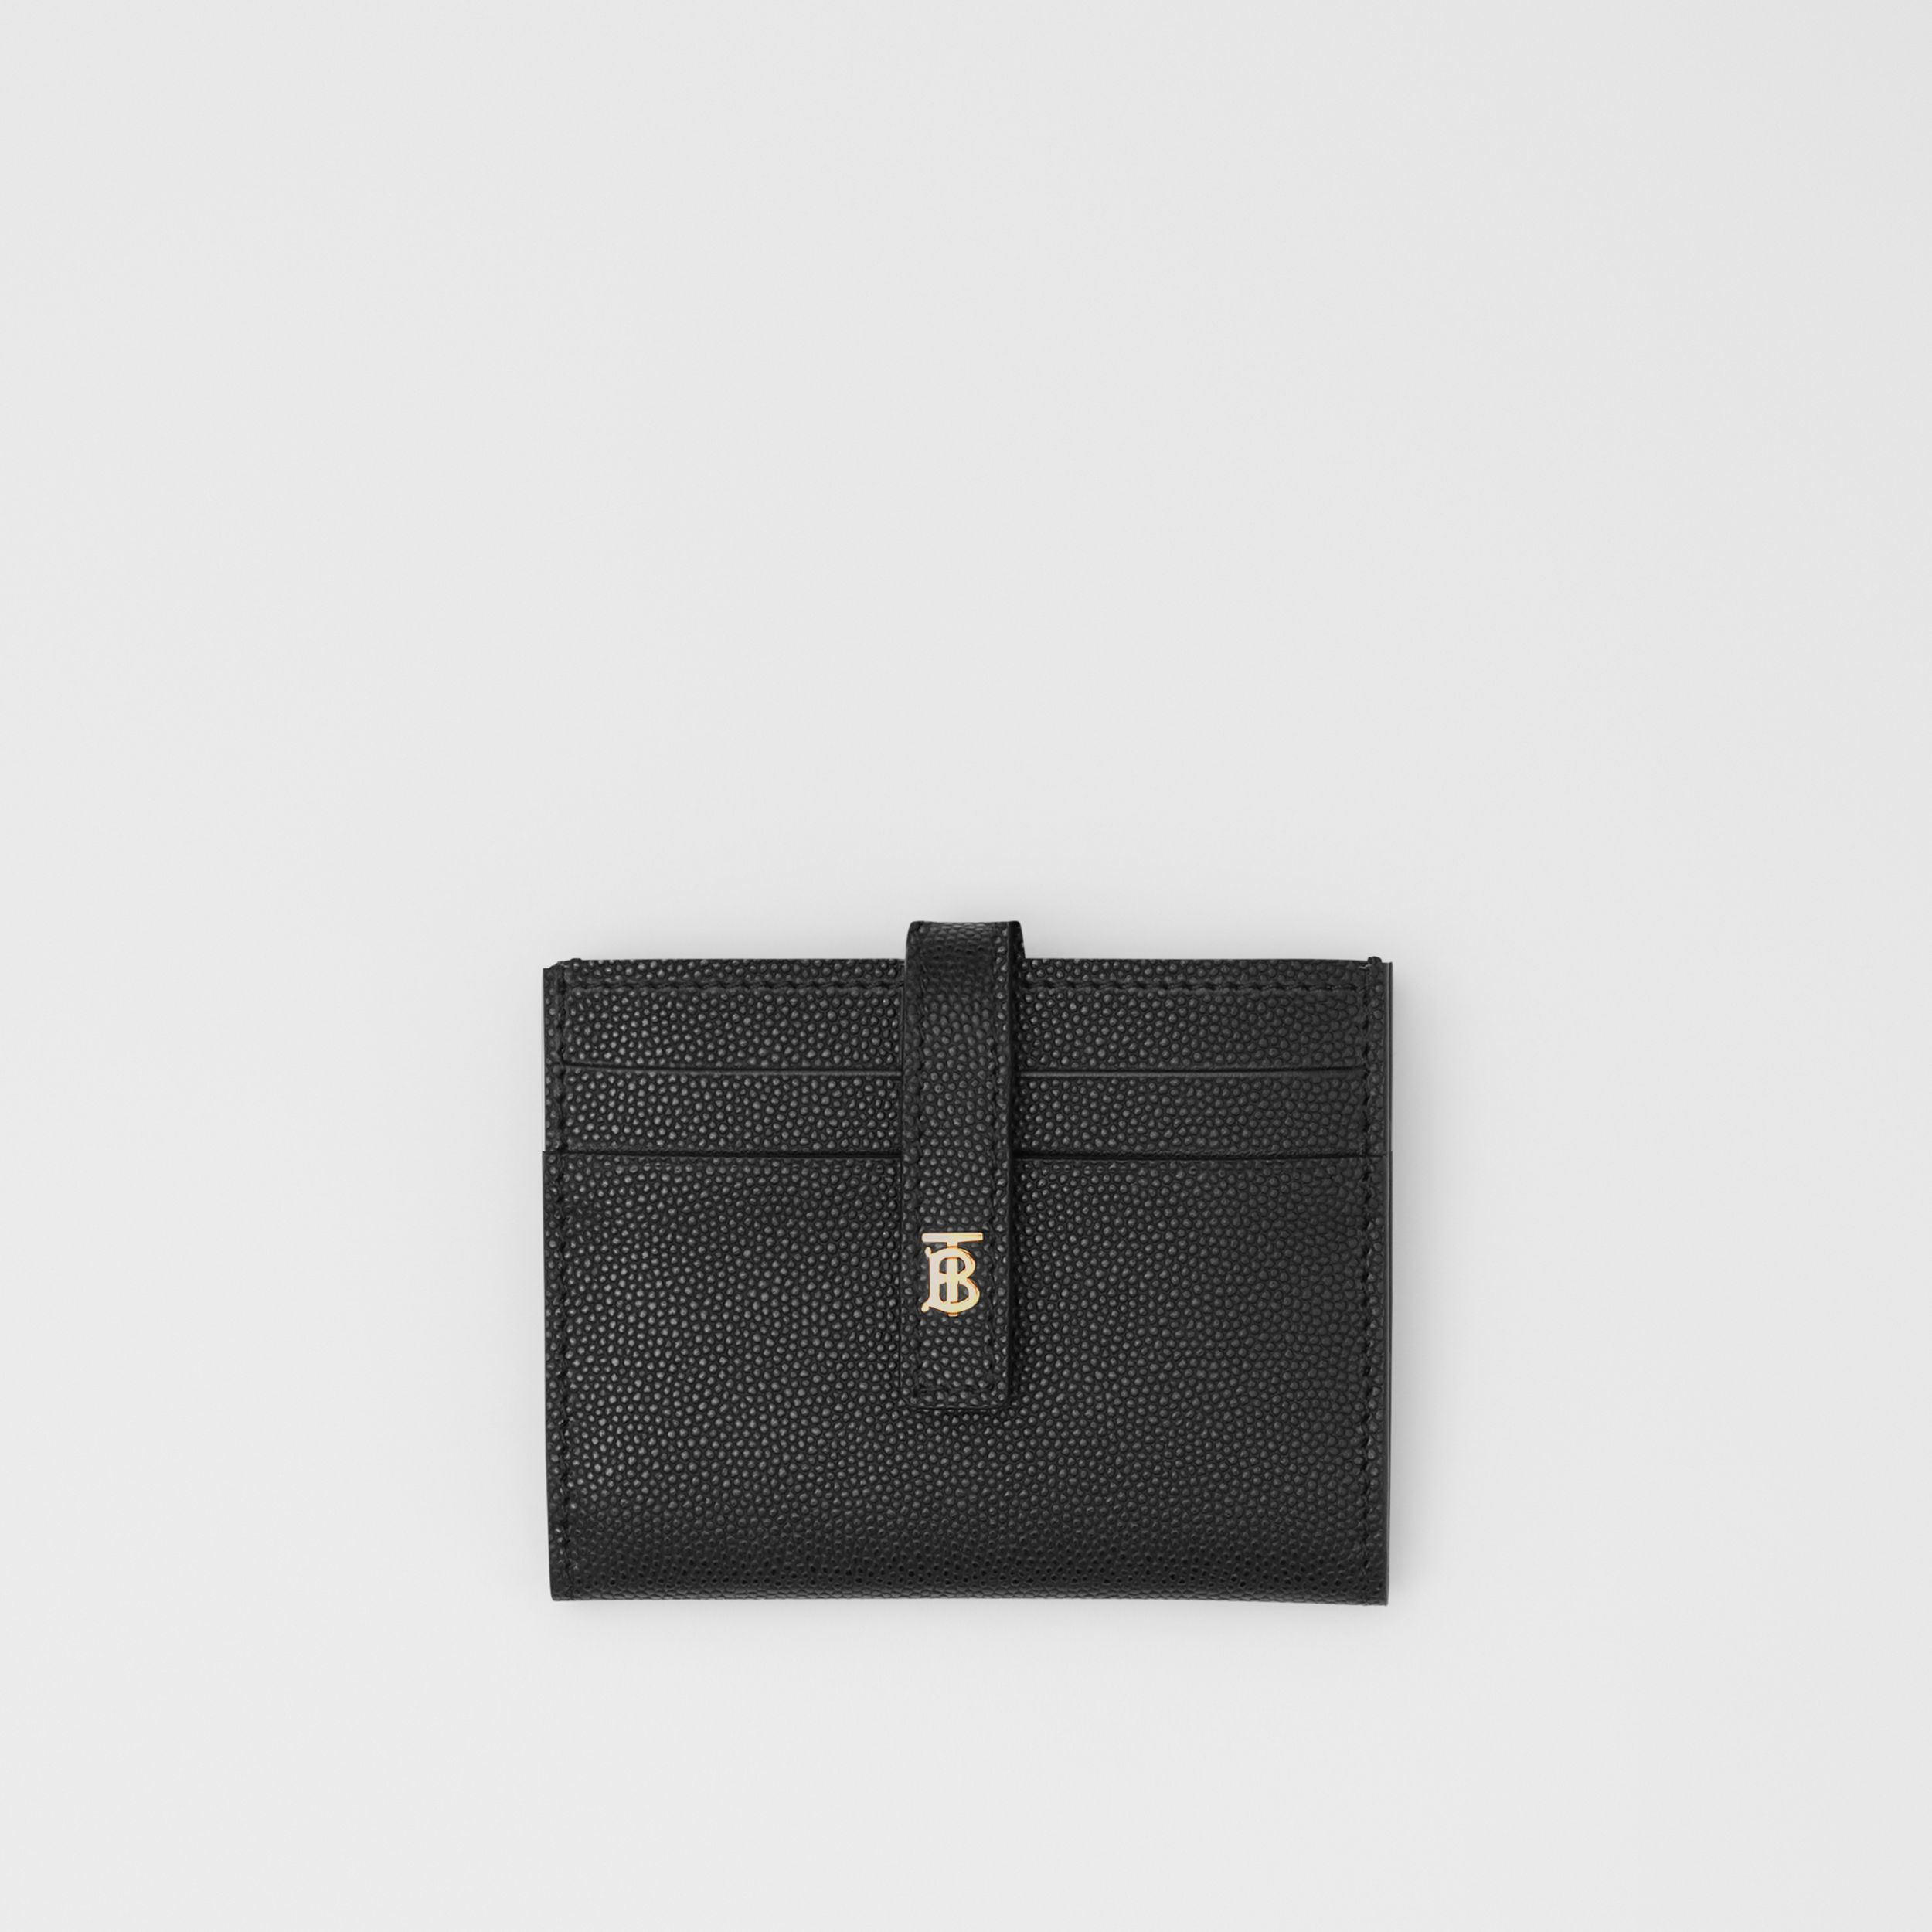 Monogram Motif Leather Folding Card Case in Black - Women | Burberry - 1